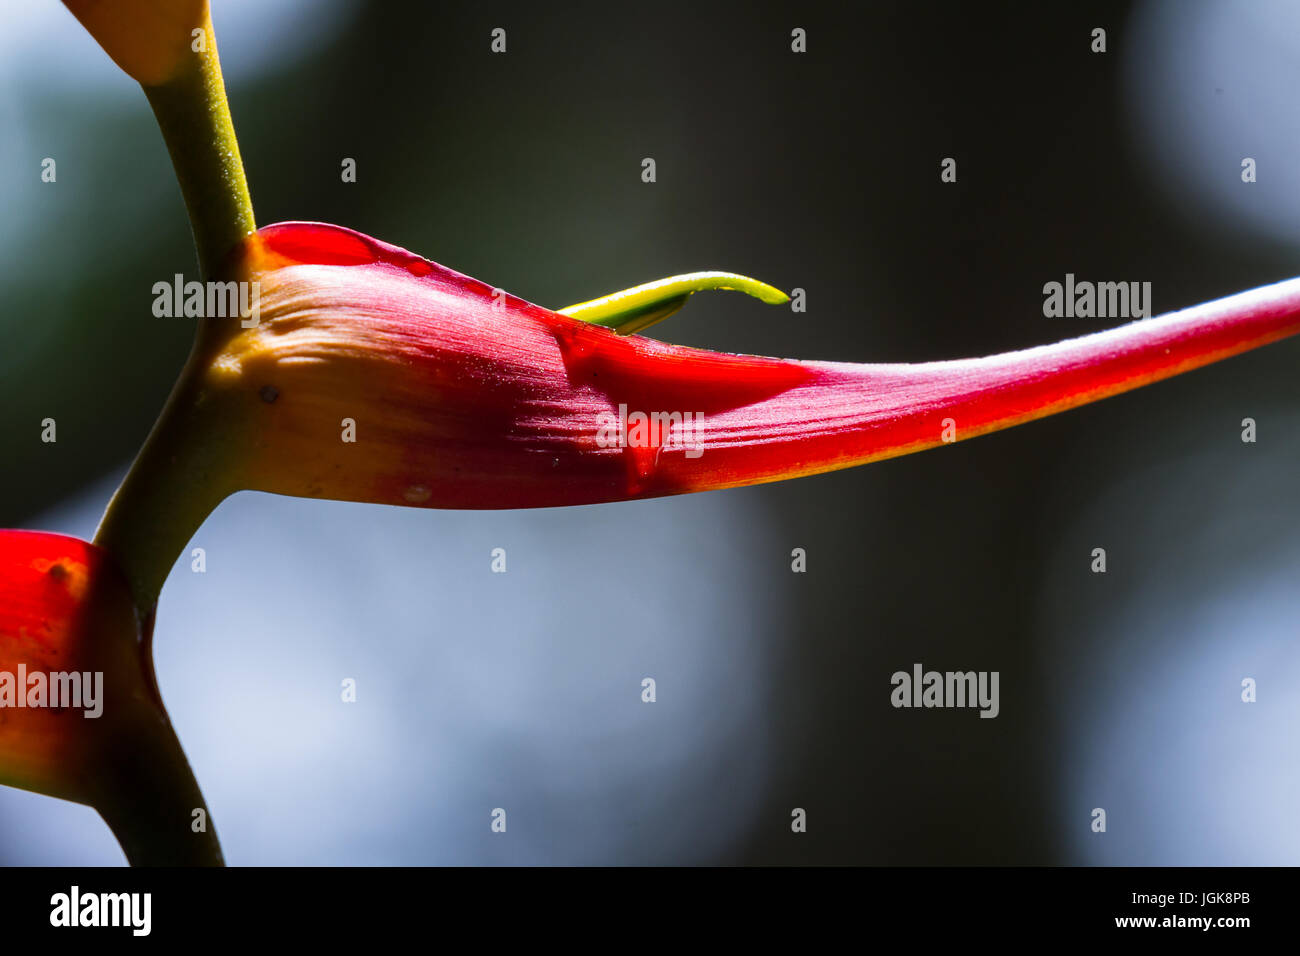 close up of a beautiful tropical Heliconia latispatha with vivid colors ranging from yellow to red - Stock Image